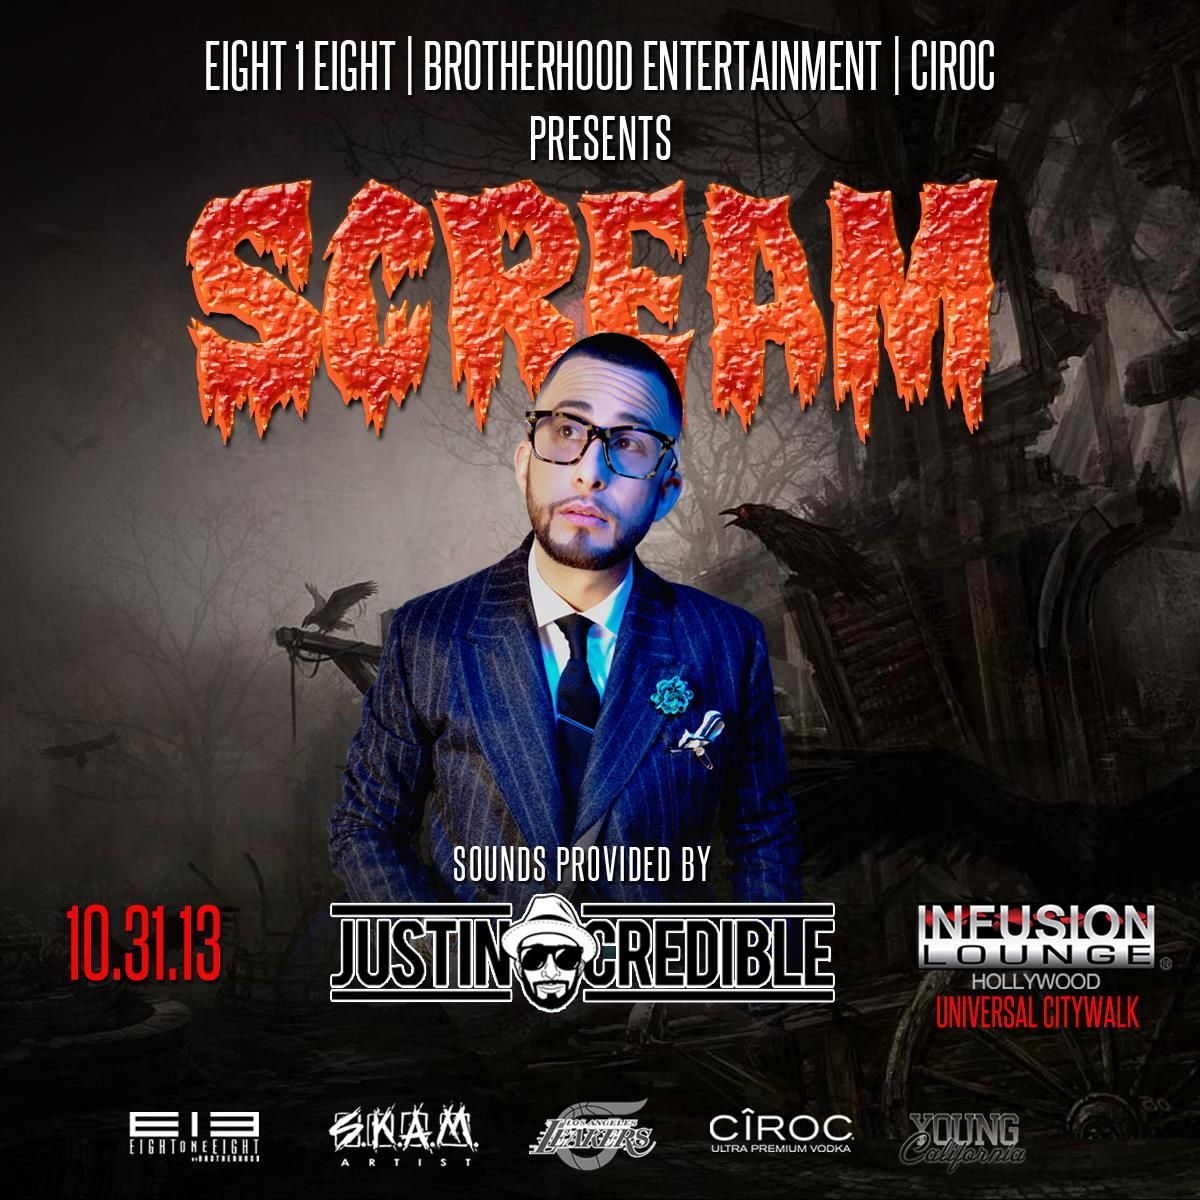 Scream Halloween 2013 Party at Infusion Lounge, Los Angeles, CA. Grab your tickets now.  Artists: S.K.A.M. Artist, LA LEAKER & Power 106s JUSTIN CREDIBLE w/ Power 106s Yessi Ortiz & Young California's DJ Carisma & Dre Sinatra  Date & Time: Thursday, October 31, 2013, 08:00PM  Age: 21+ Dress Code: Fly & Trendy Dress Code  Location: Infusion Lounge 1000 Universal Studios Blvd Ste. 208, Los Angeles, CA, 91608 United States